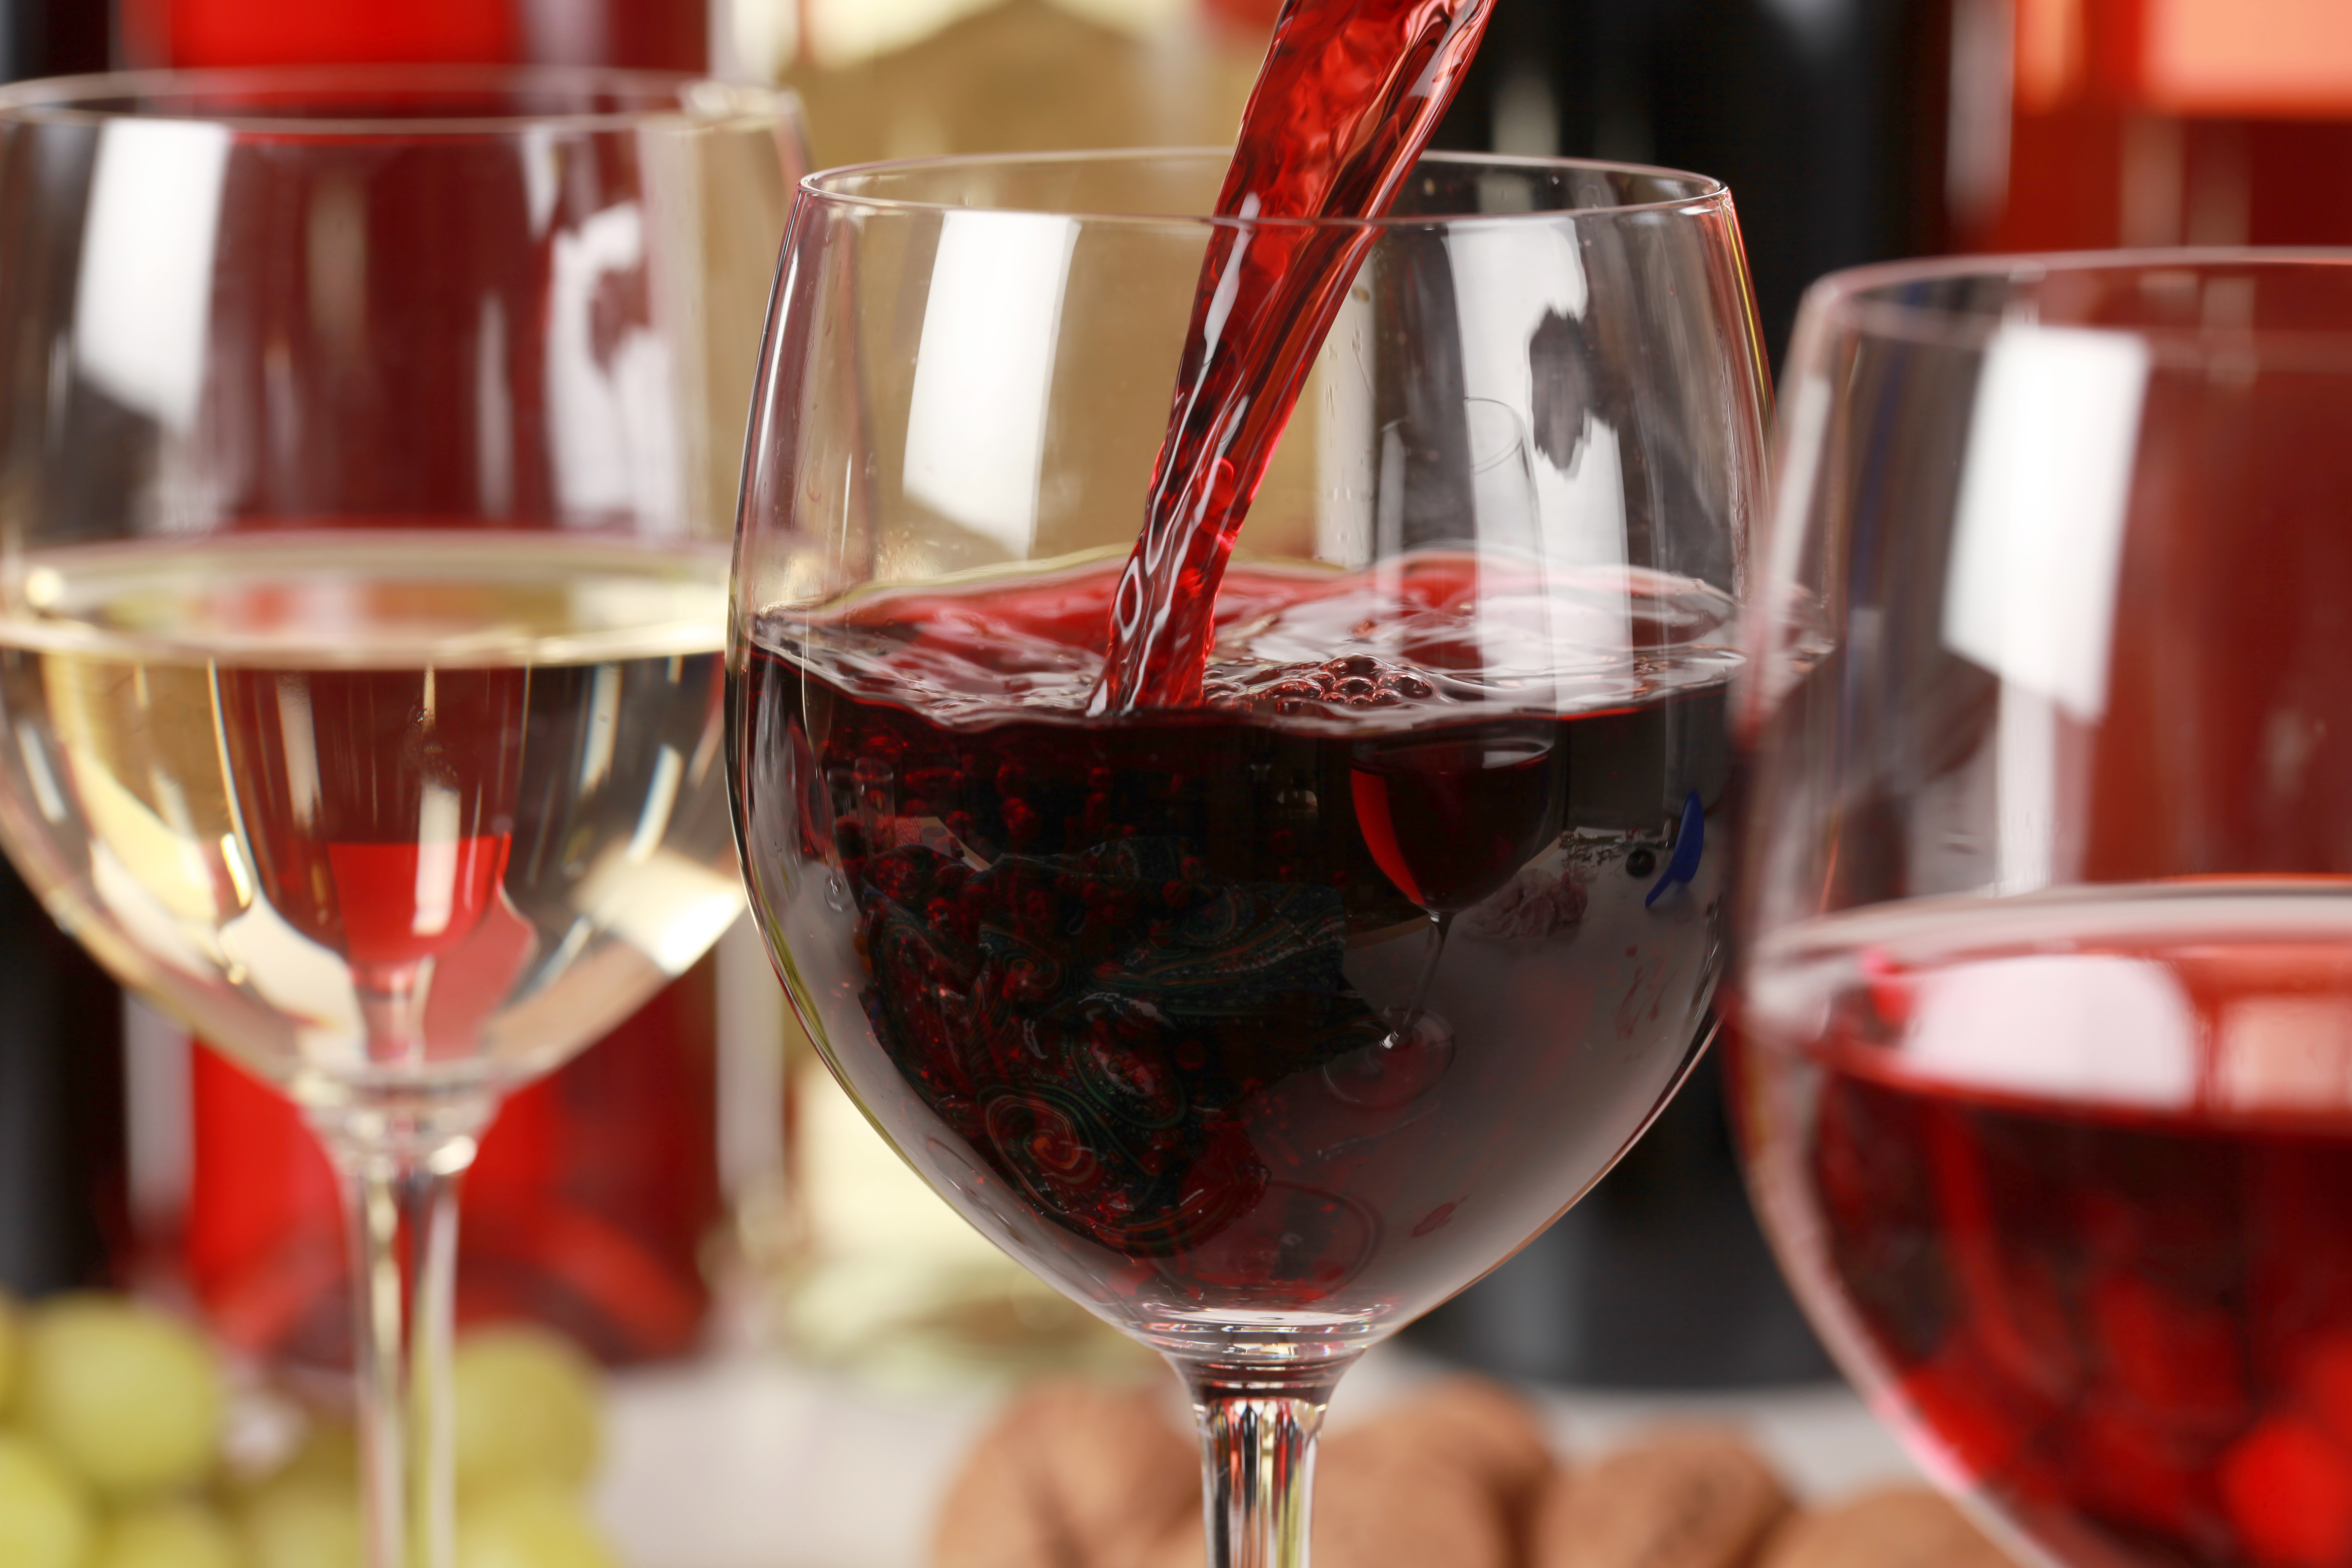 Move Aside Franzia! Boxed Wine is Now Tastier and a Definite Money-Saver!